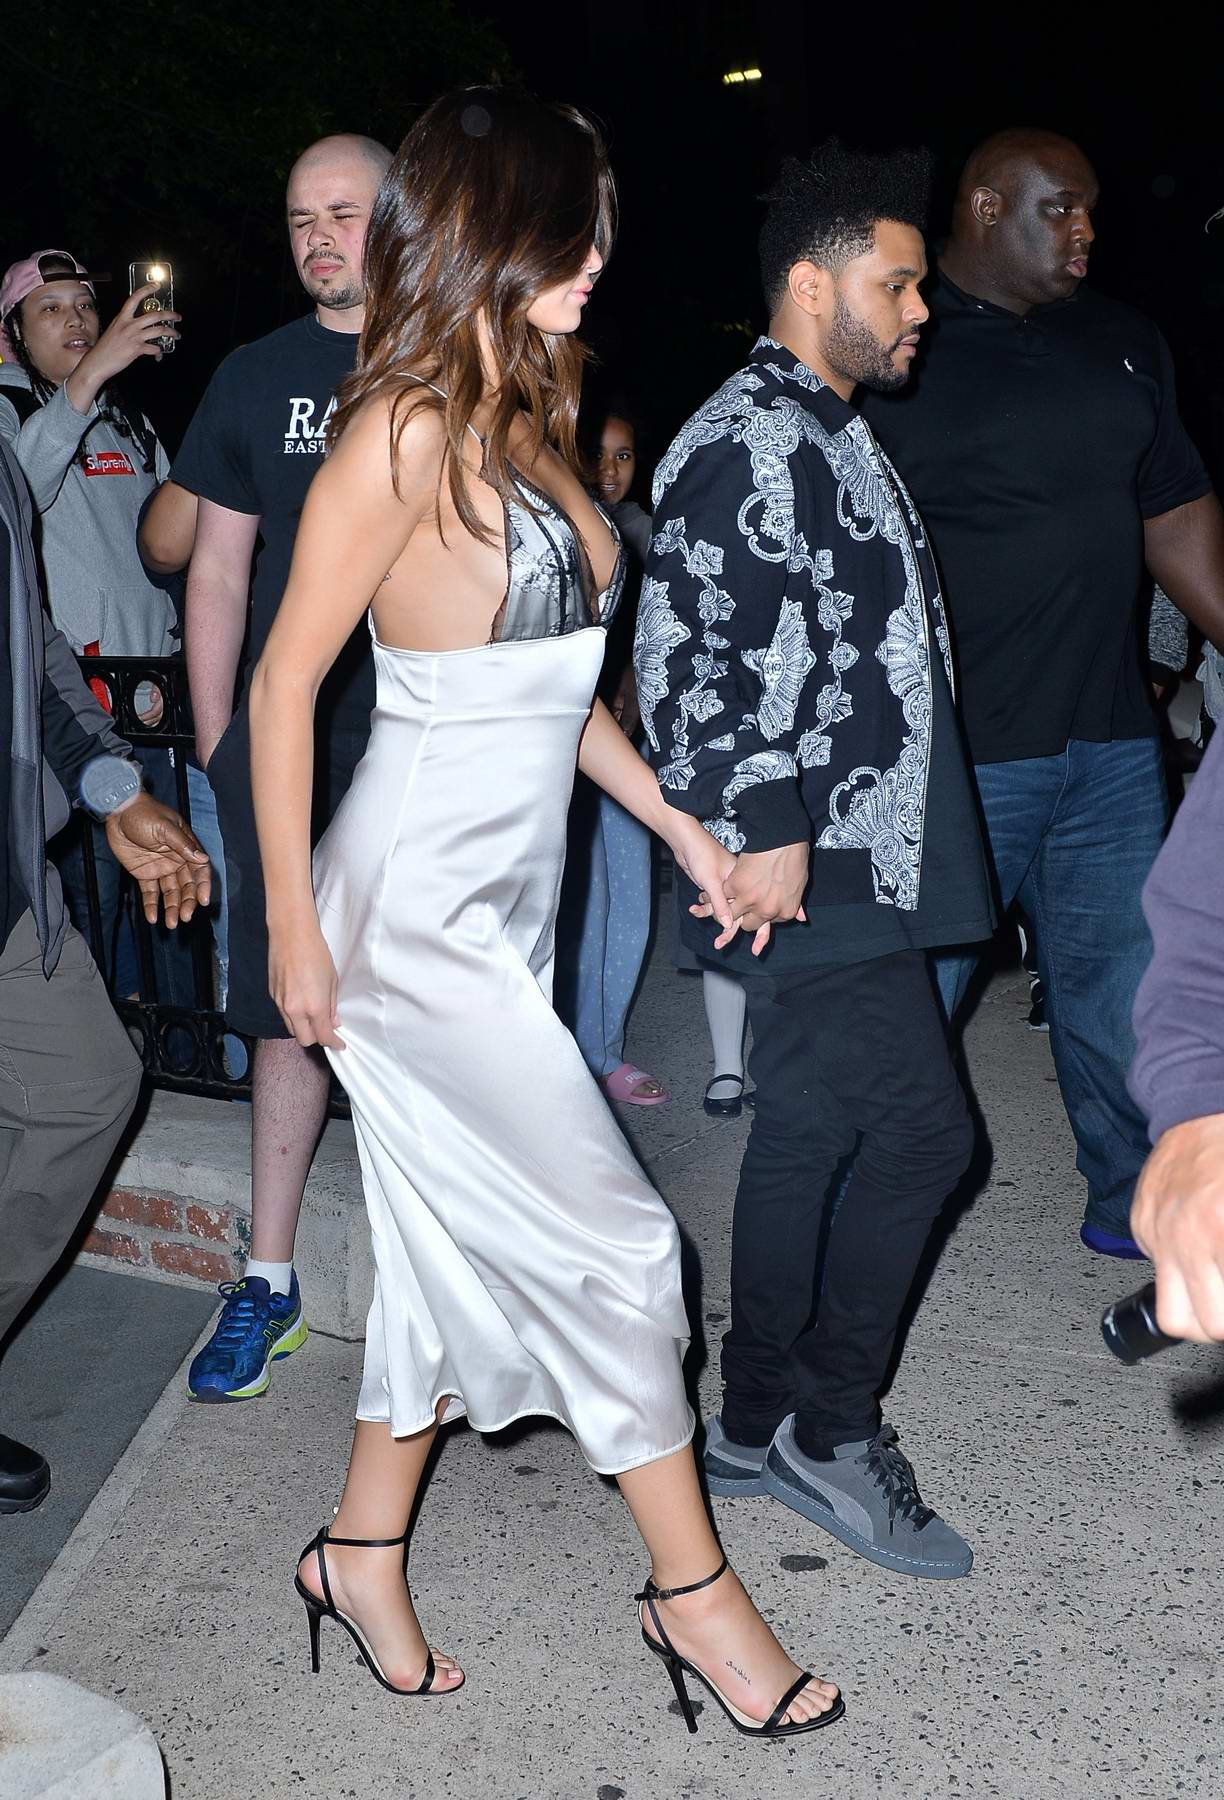 selena gomez and the weeknd out for dinner at rao's during their